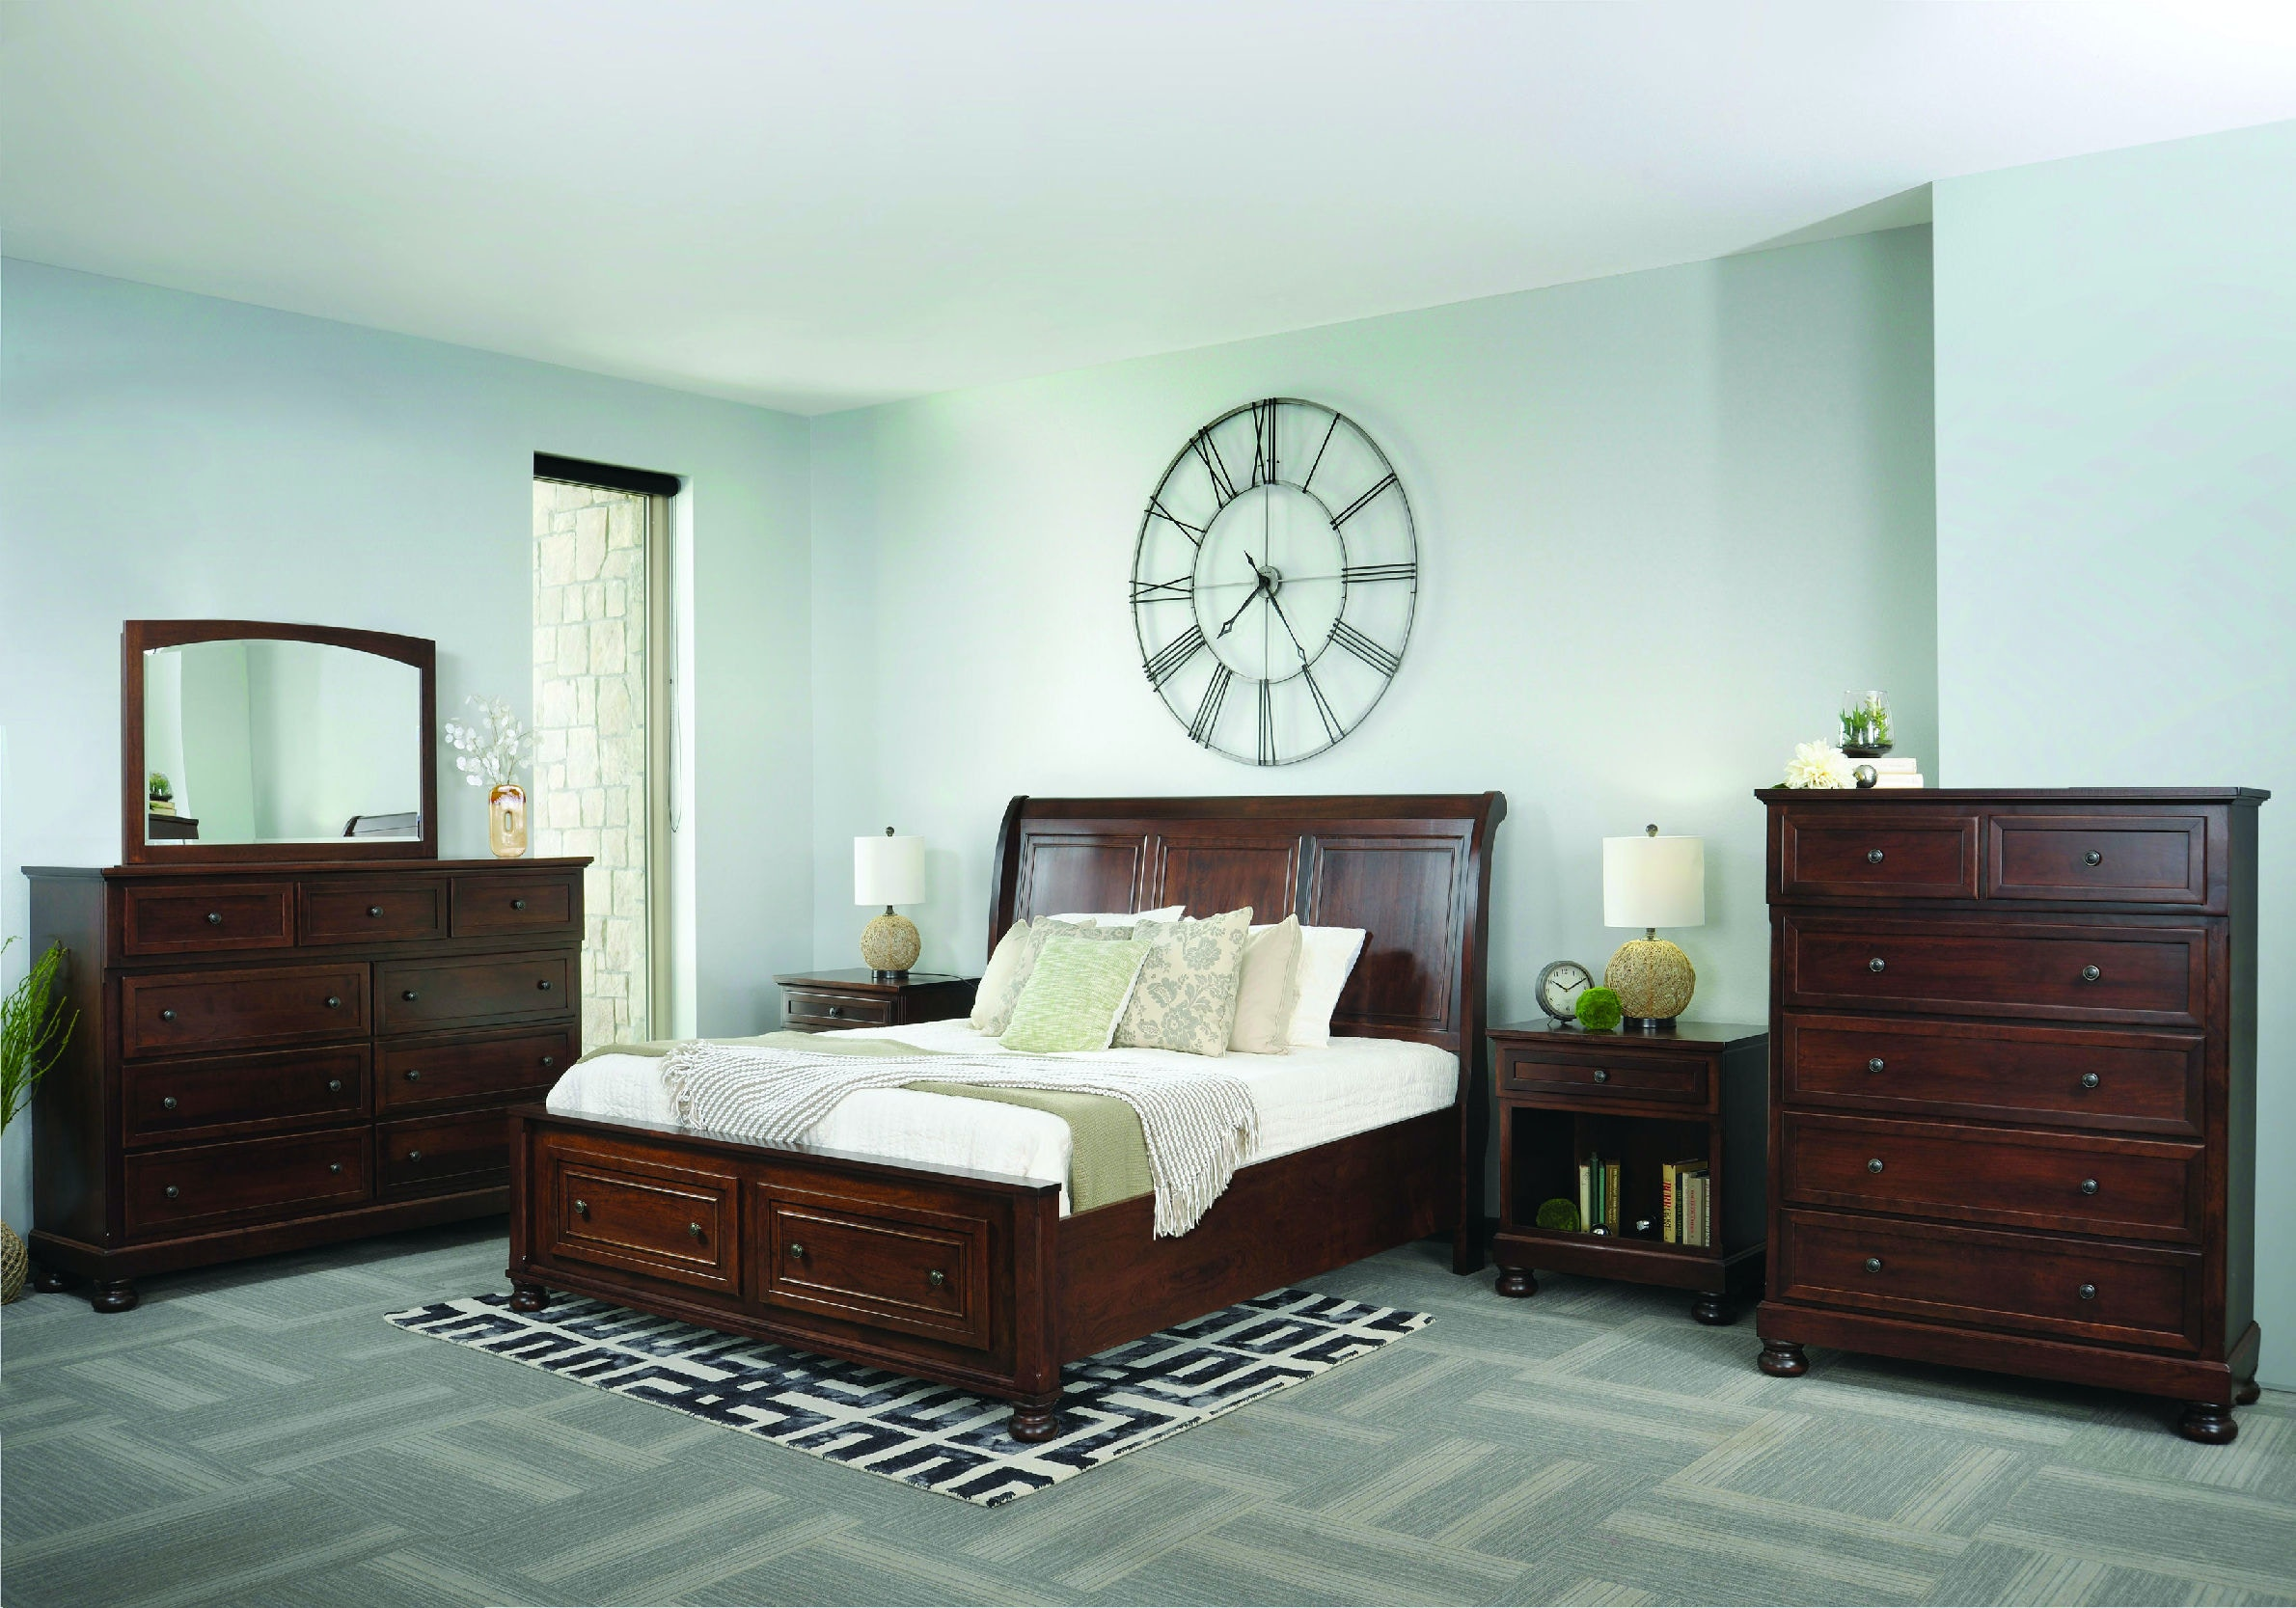 Merveilleux Palettes By Winesburg Bedroom Sleigh Bed With Both Side Drawers